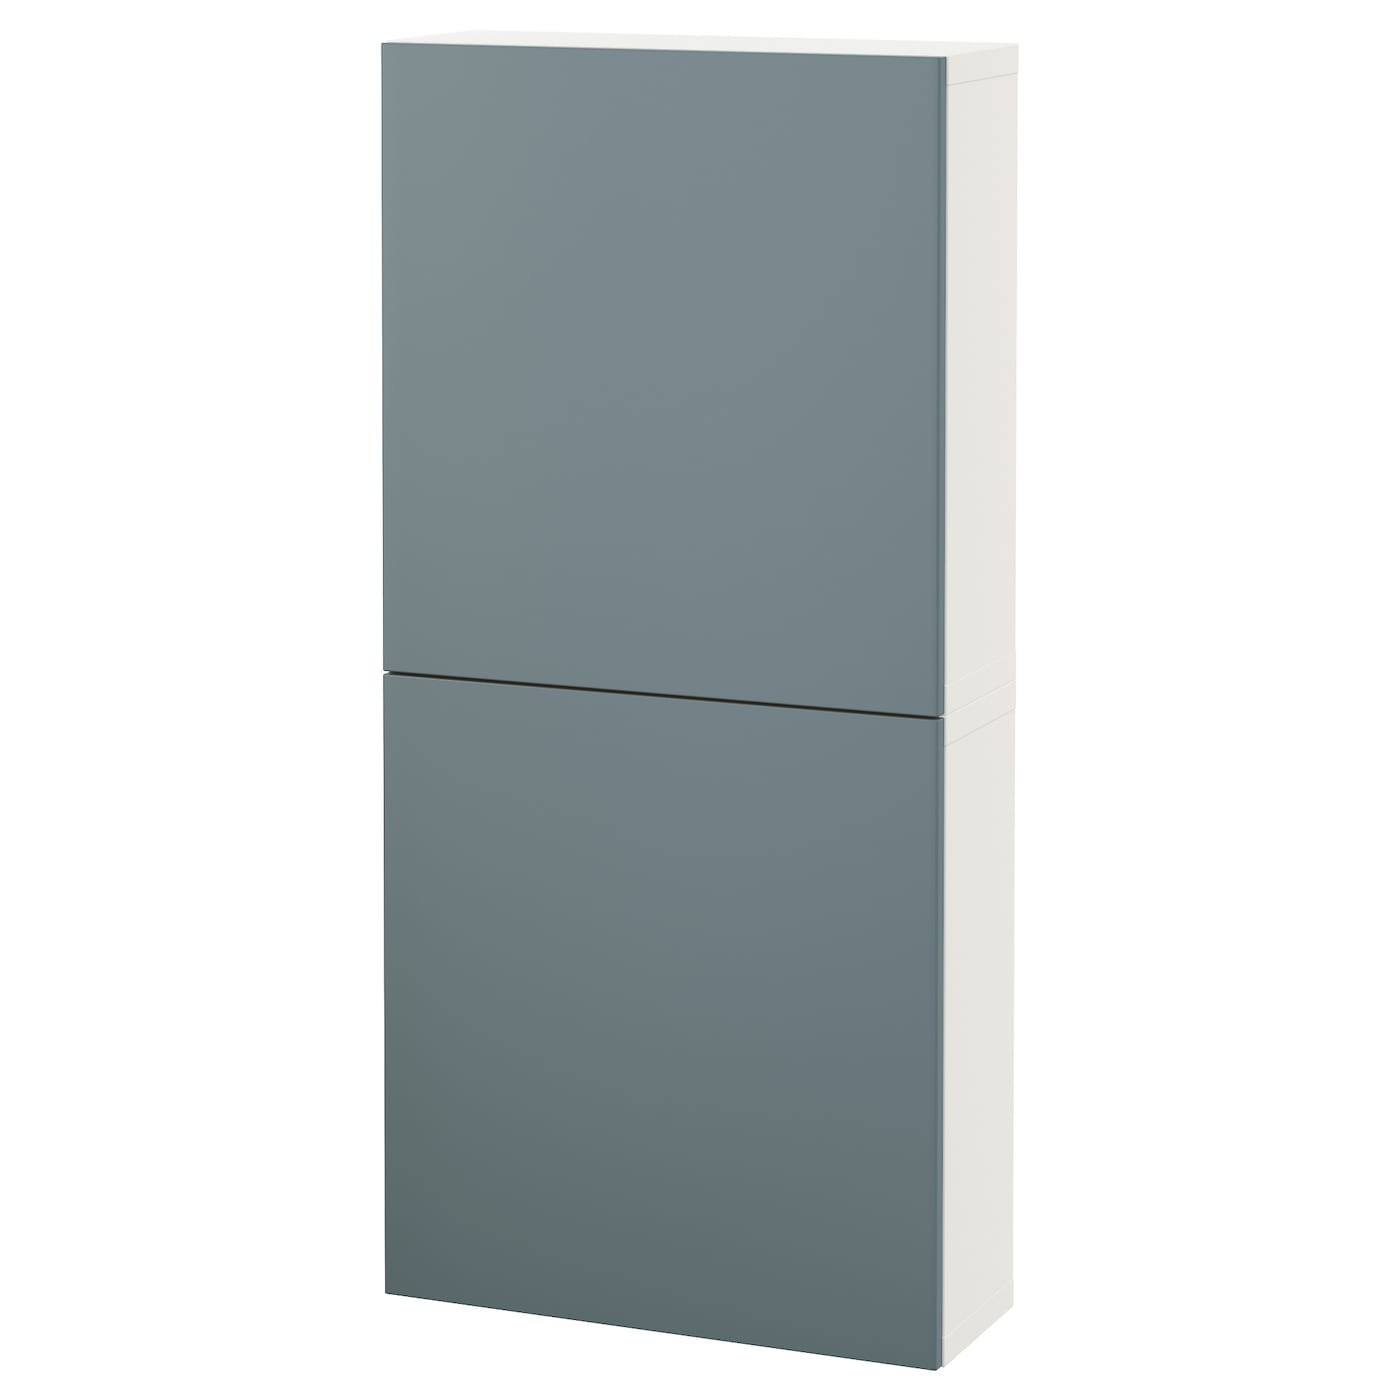 Best wall cabinet with 2 doors white valviken grey for Ikea meuble mural besta